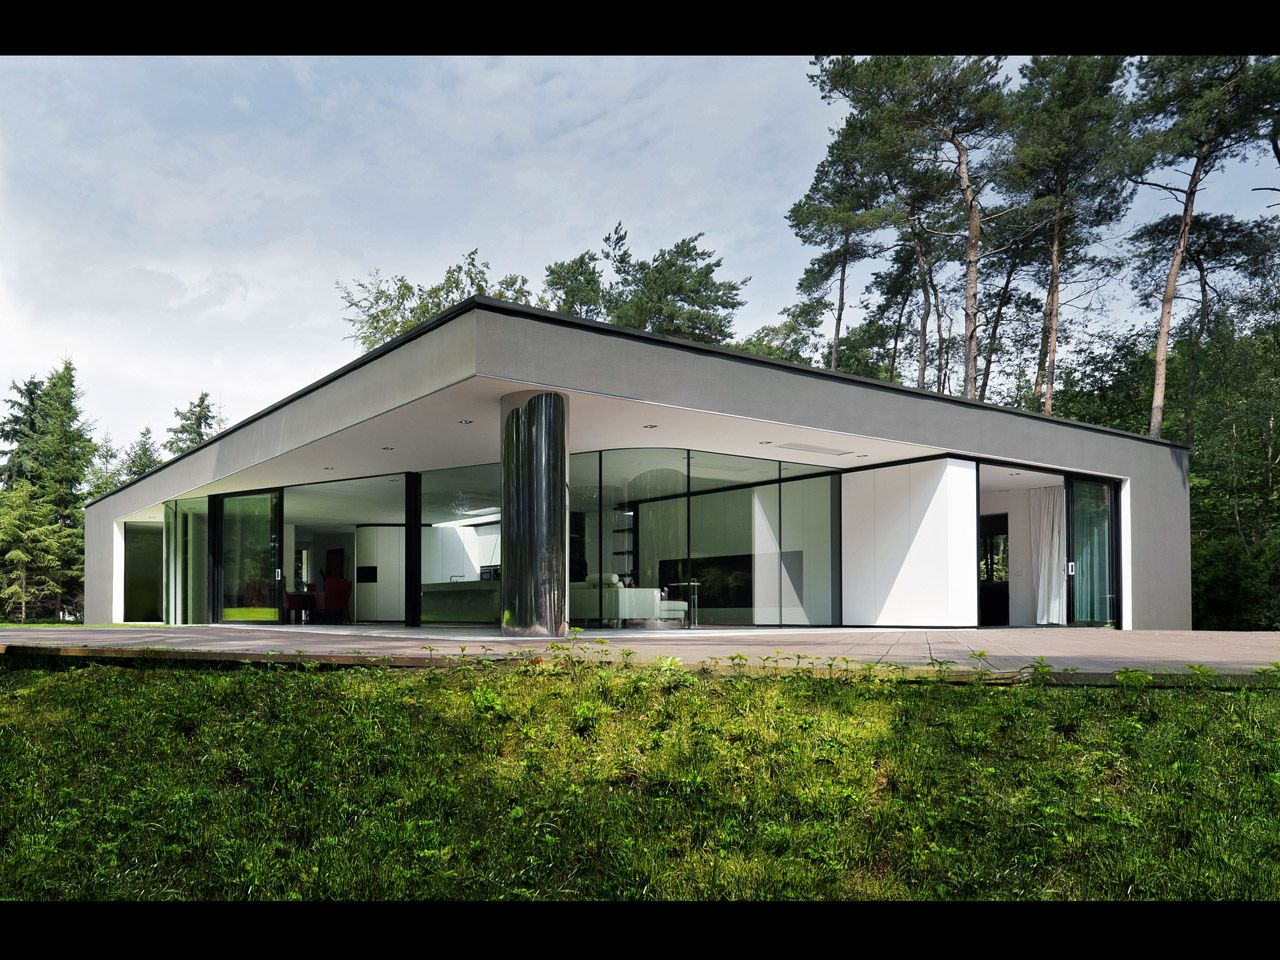 Dutch Architecture Firm Recently Completed This Modern Villa Called Veth In Hattem Netherlands Its About Square Feet On A Bit Under